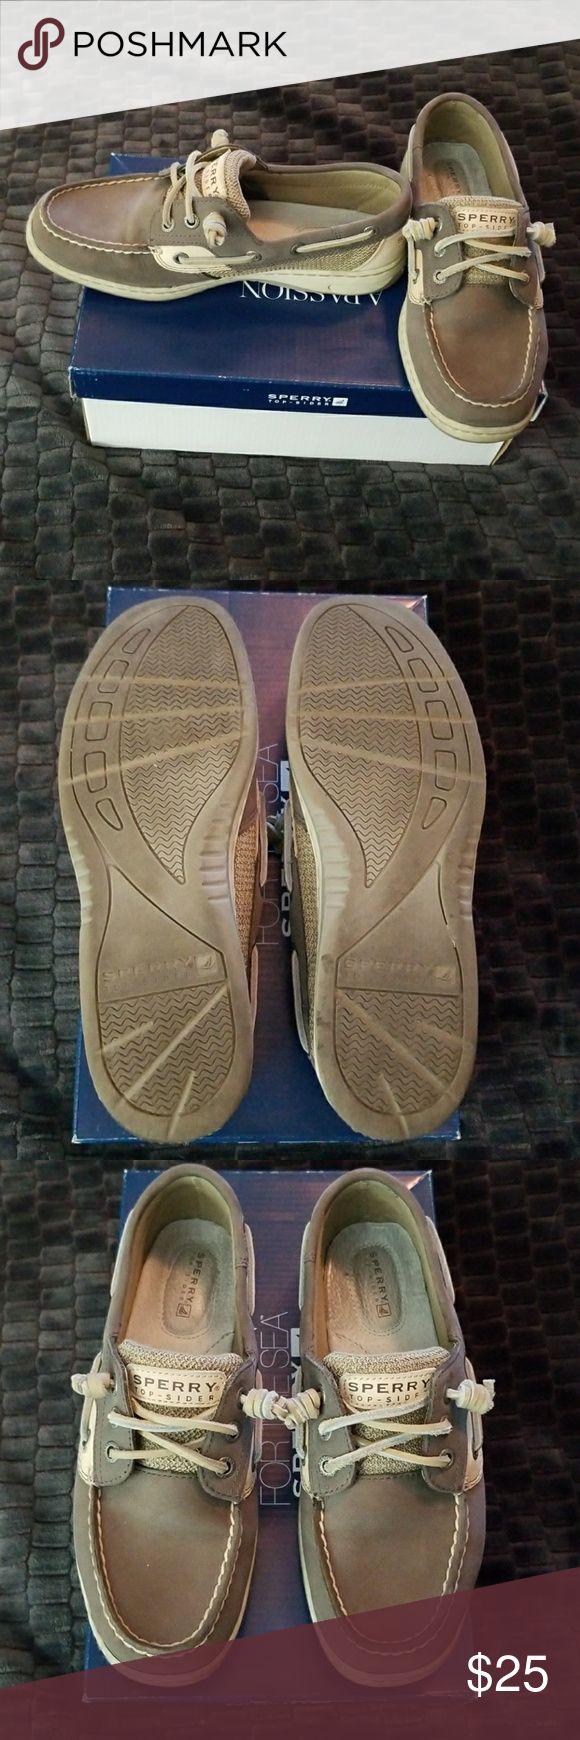 Sperry Top-Sider Shoes Sperry Top-Sider Shoes Size 7 Preowned Still in great condition. Any questions please ask. Sperry Top-Sider Shoes